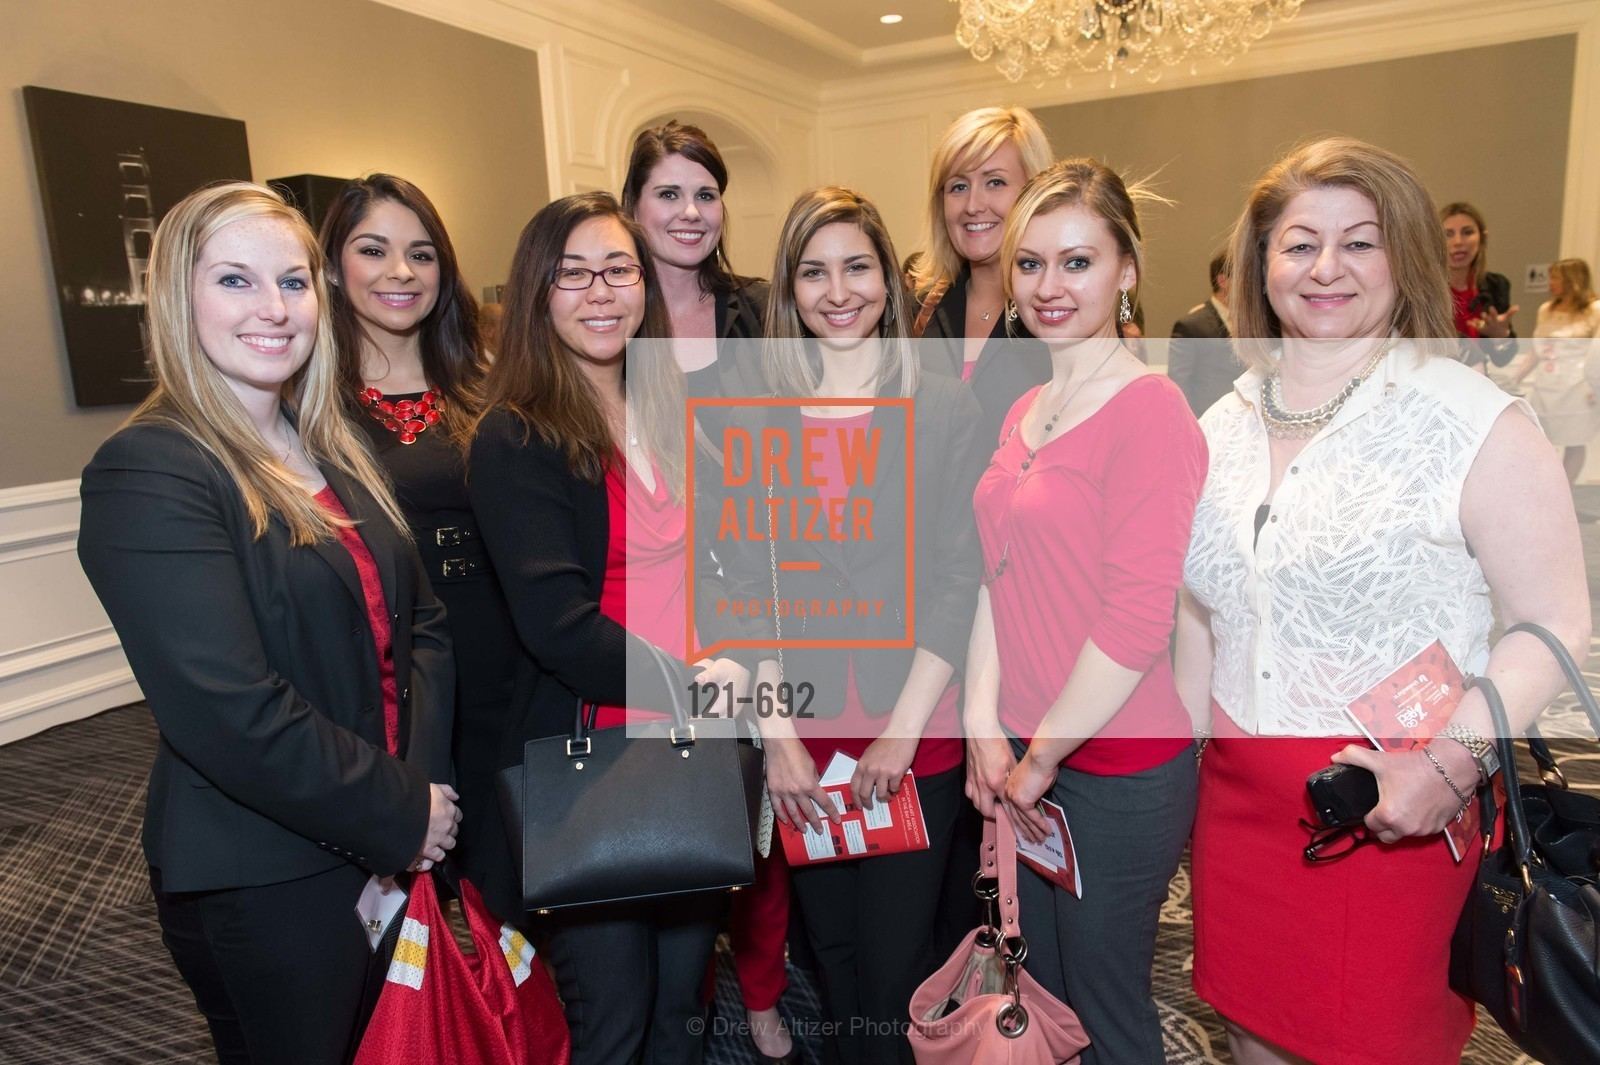 Jennifer Fletcher, Jessica Mendoza, Jessica Kuo, Marissa Anderson, Chloe Vaille, Andrea Wong, Kristin Bruner, Phoebe Marashi, 2015 GoRed for Women Luncheon, US, May 1st, 2015,Drew Altizer, Drew Altizer Photography, full-service agency, private events, San Francisco photographer, photographer california